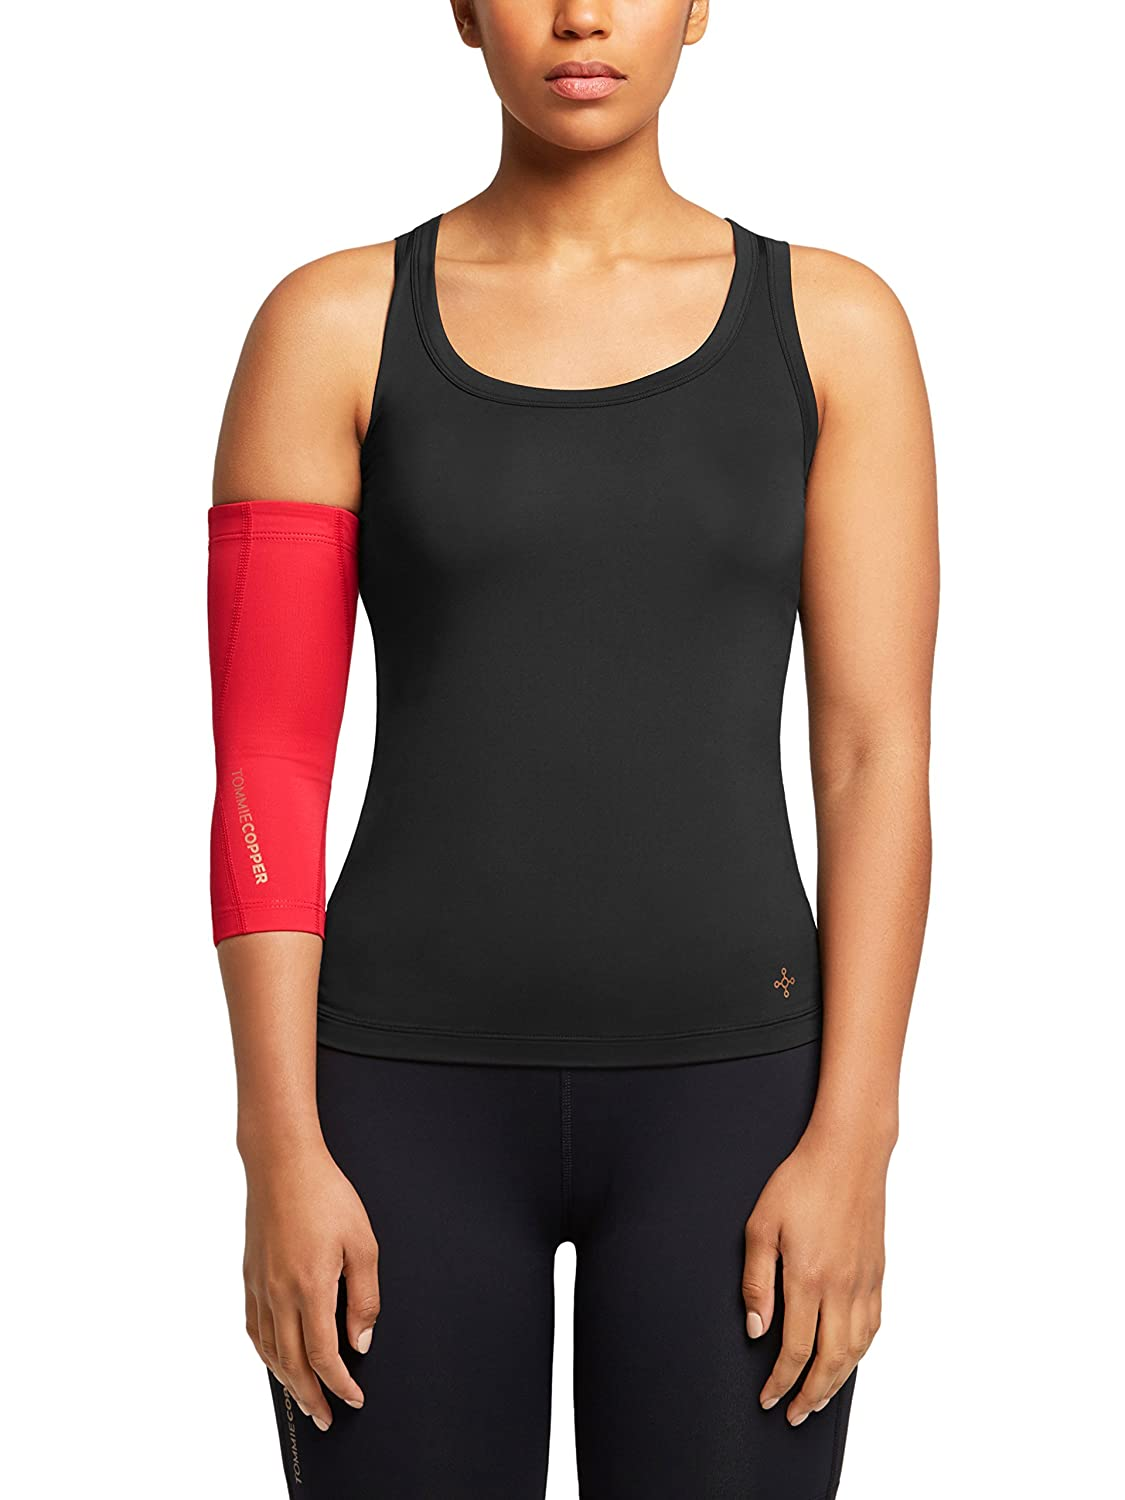 Tommie Copper Performance Elbow Sleeve 2.0